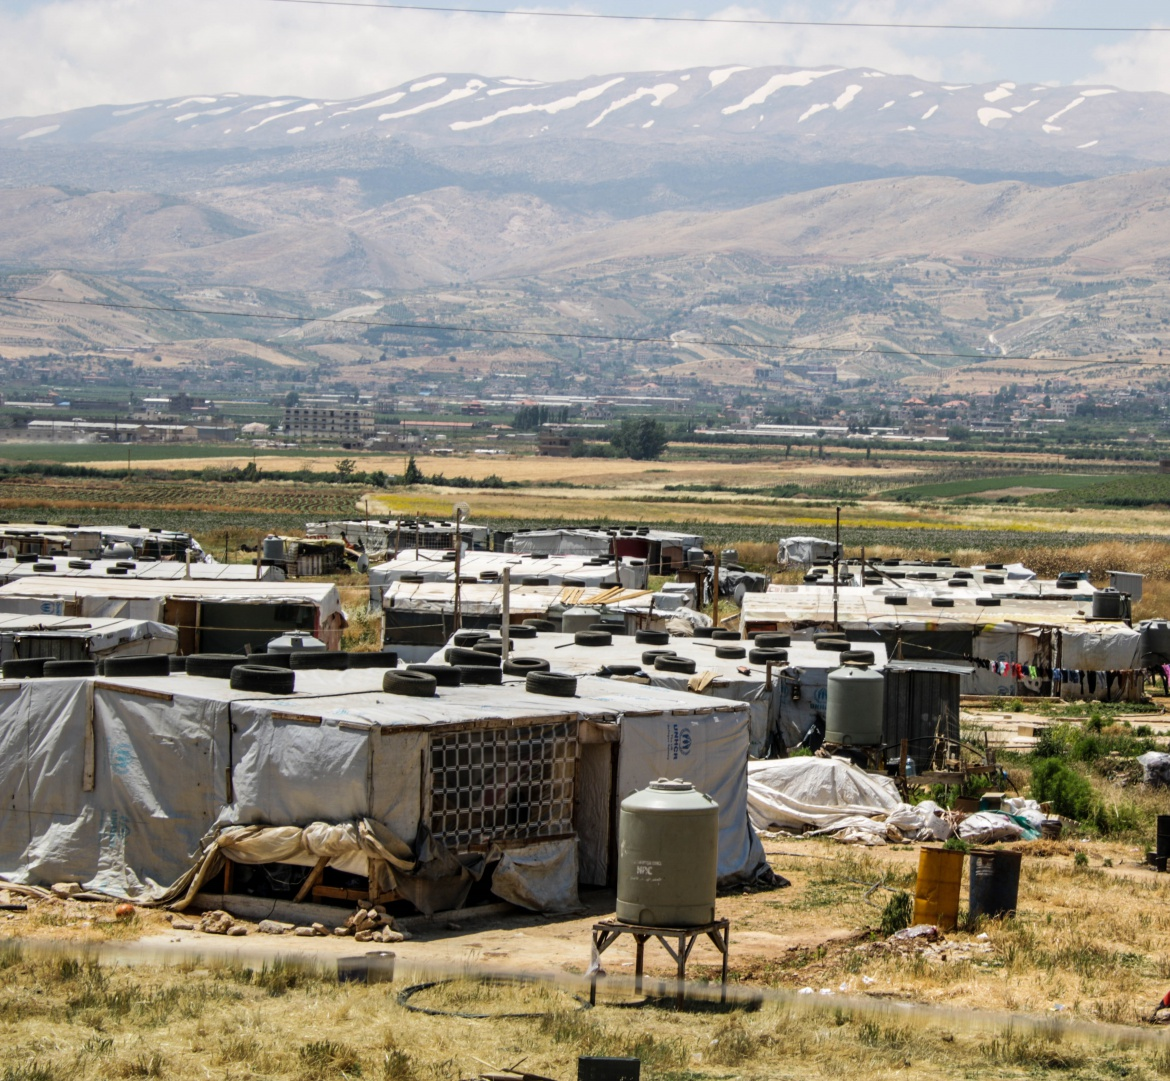 Compassion, faith and hope: preparing for COVID19 among refugees in the Bekaa Valley